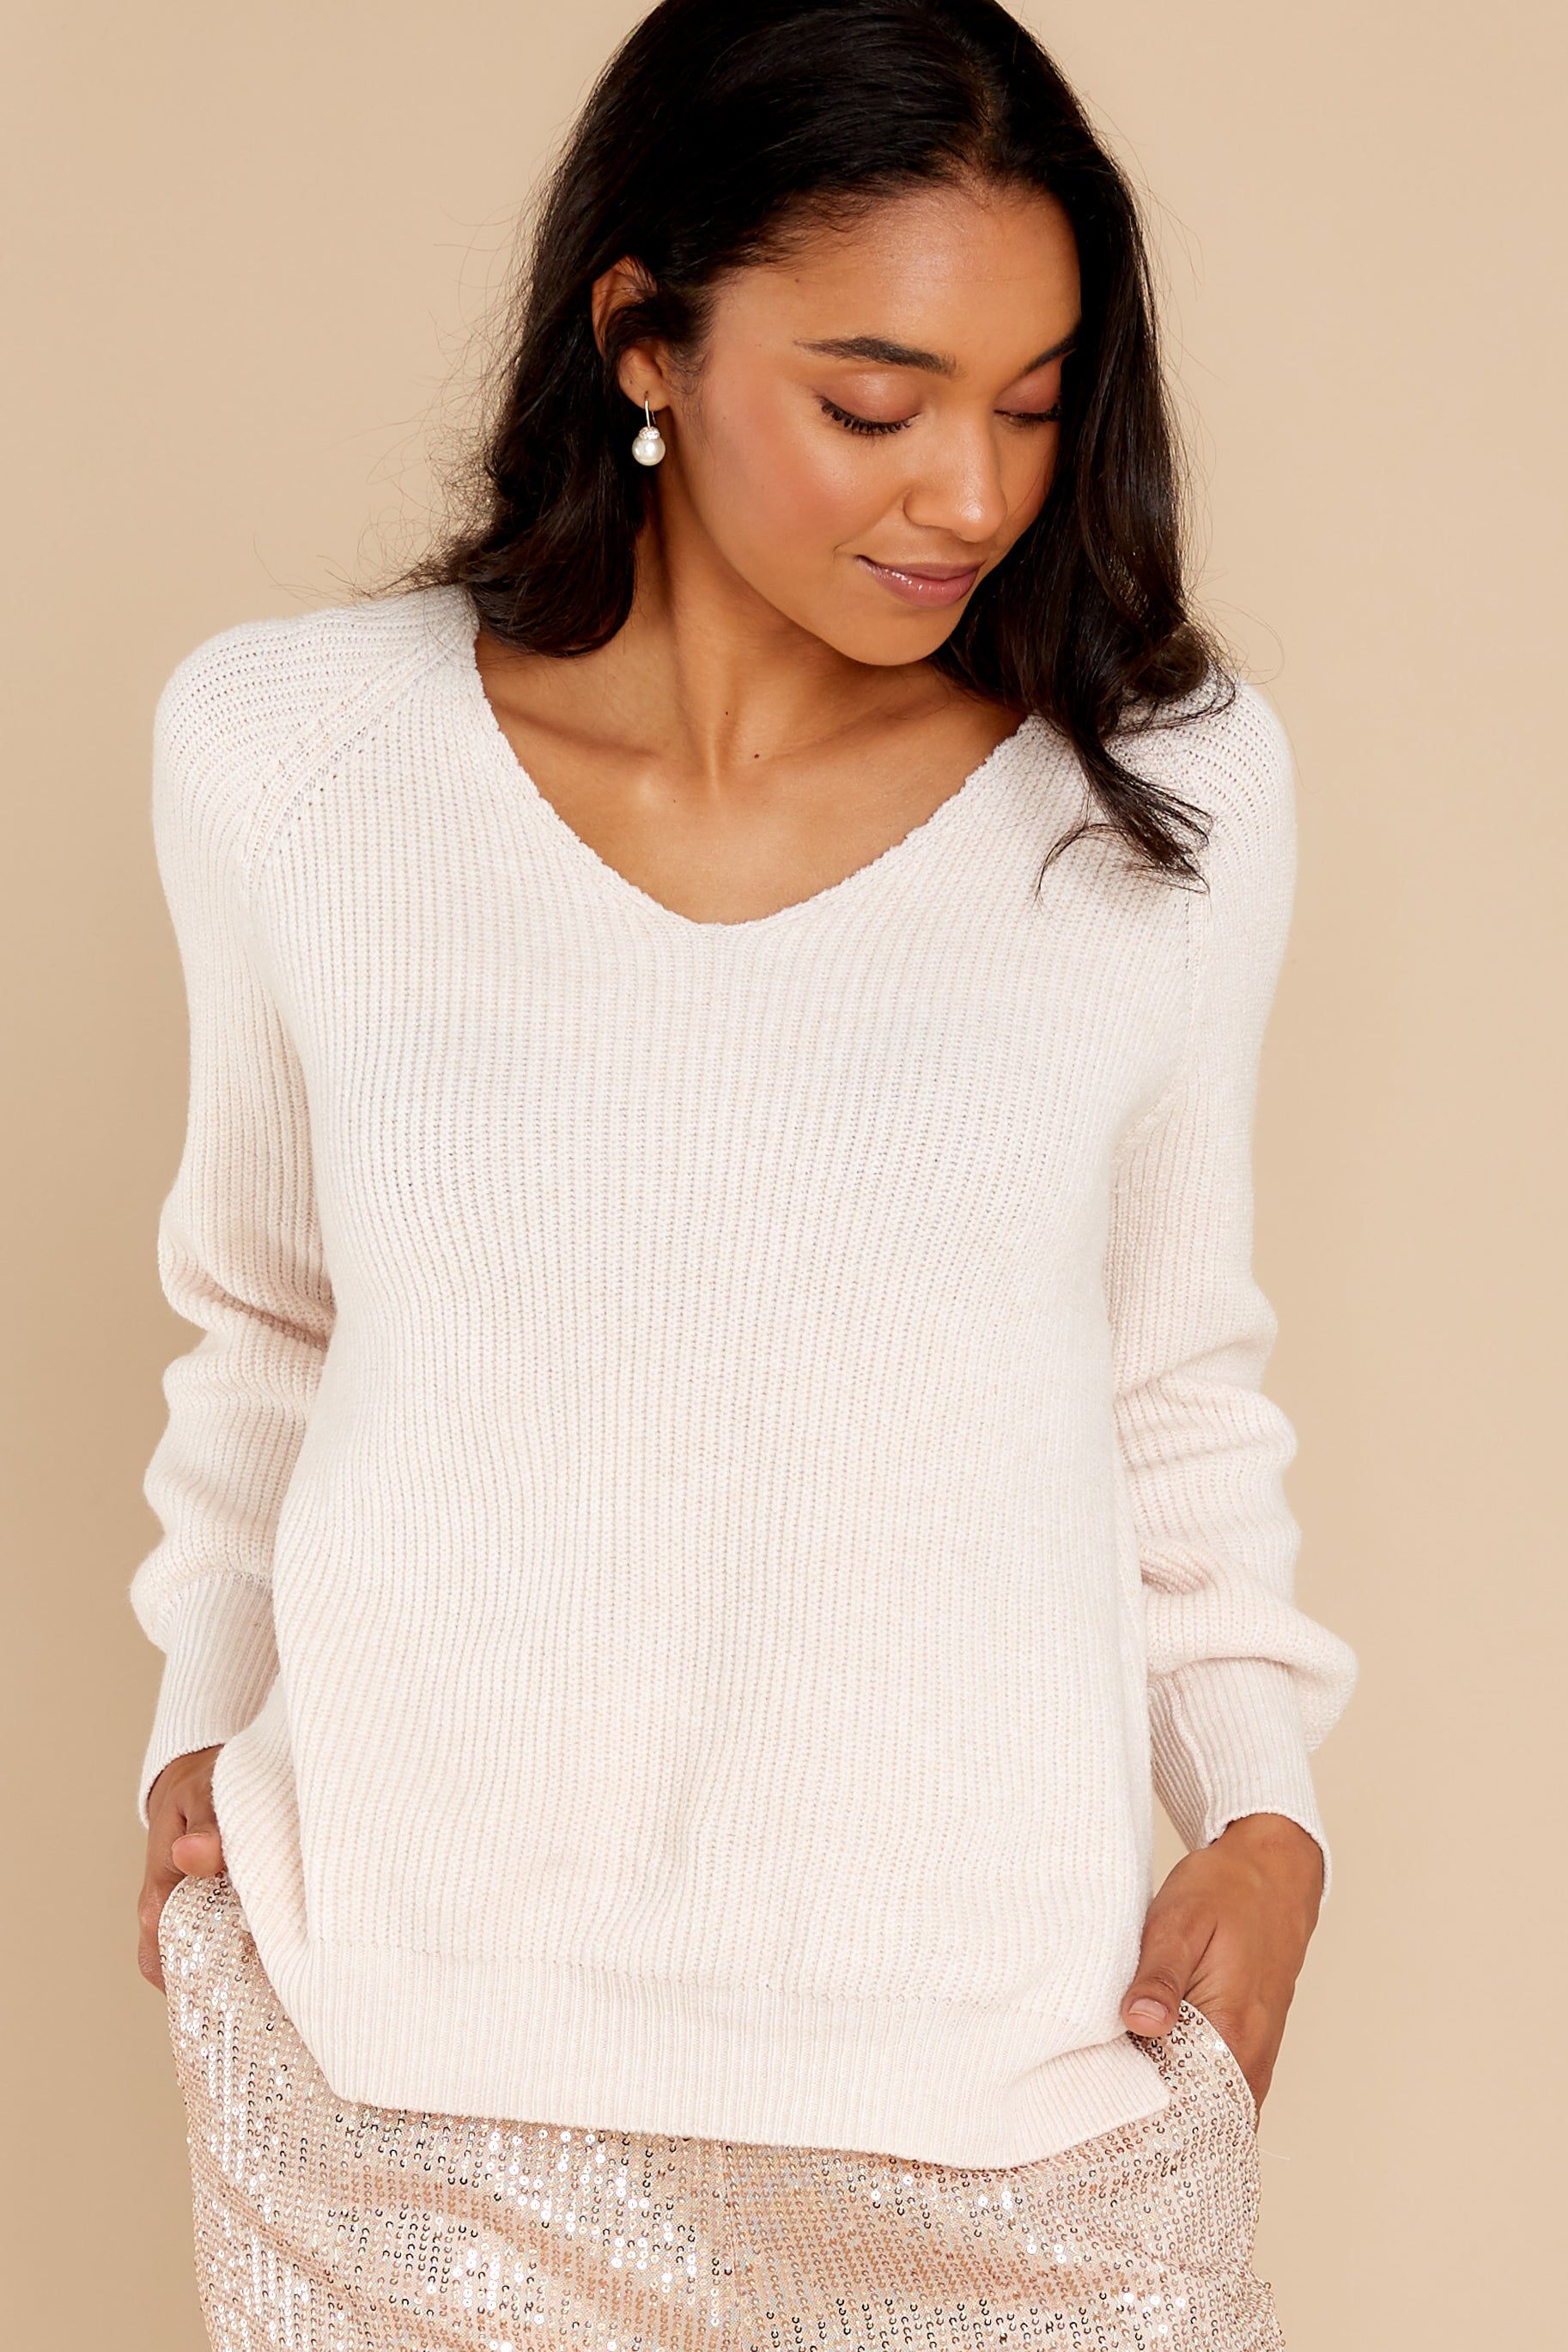 12 New Traditions Ivory Sweater at reddress.com